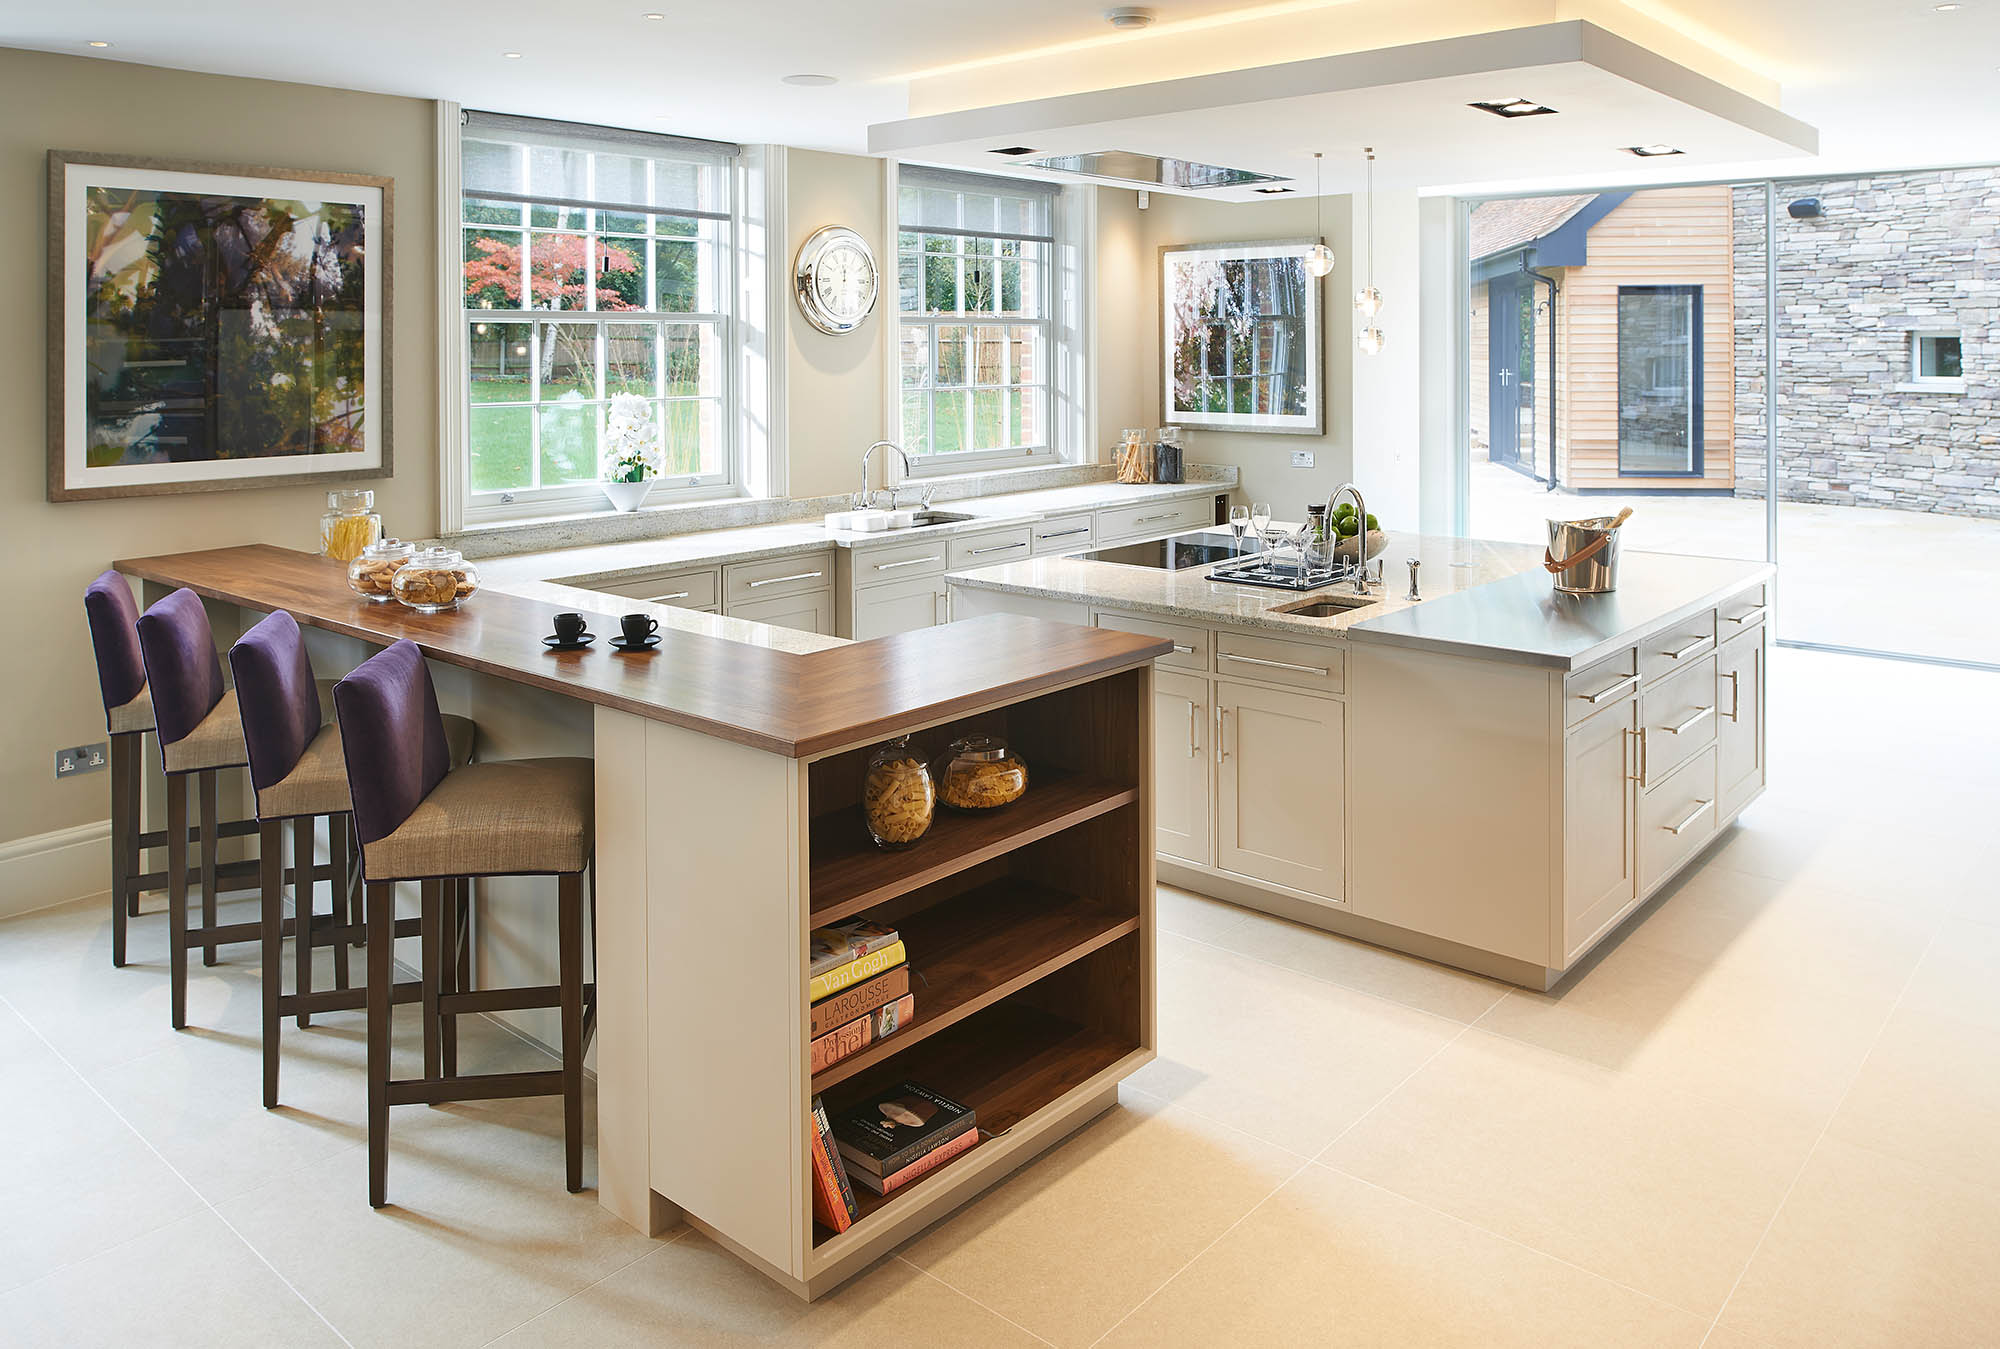 David Linley Kitchen Design for Coombe Estate Home with shaker cabinets, large island and breakfast bar